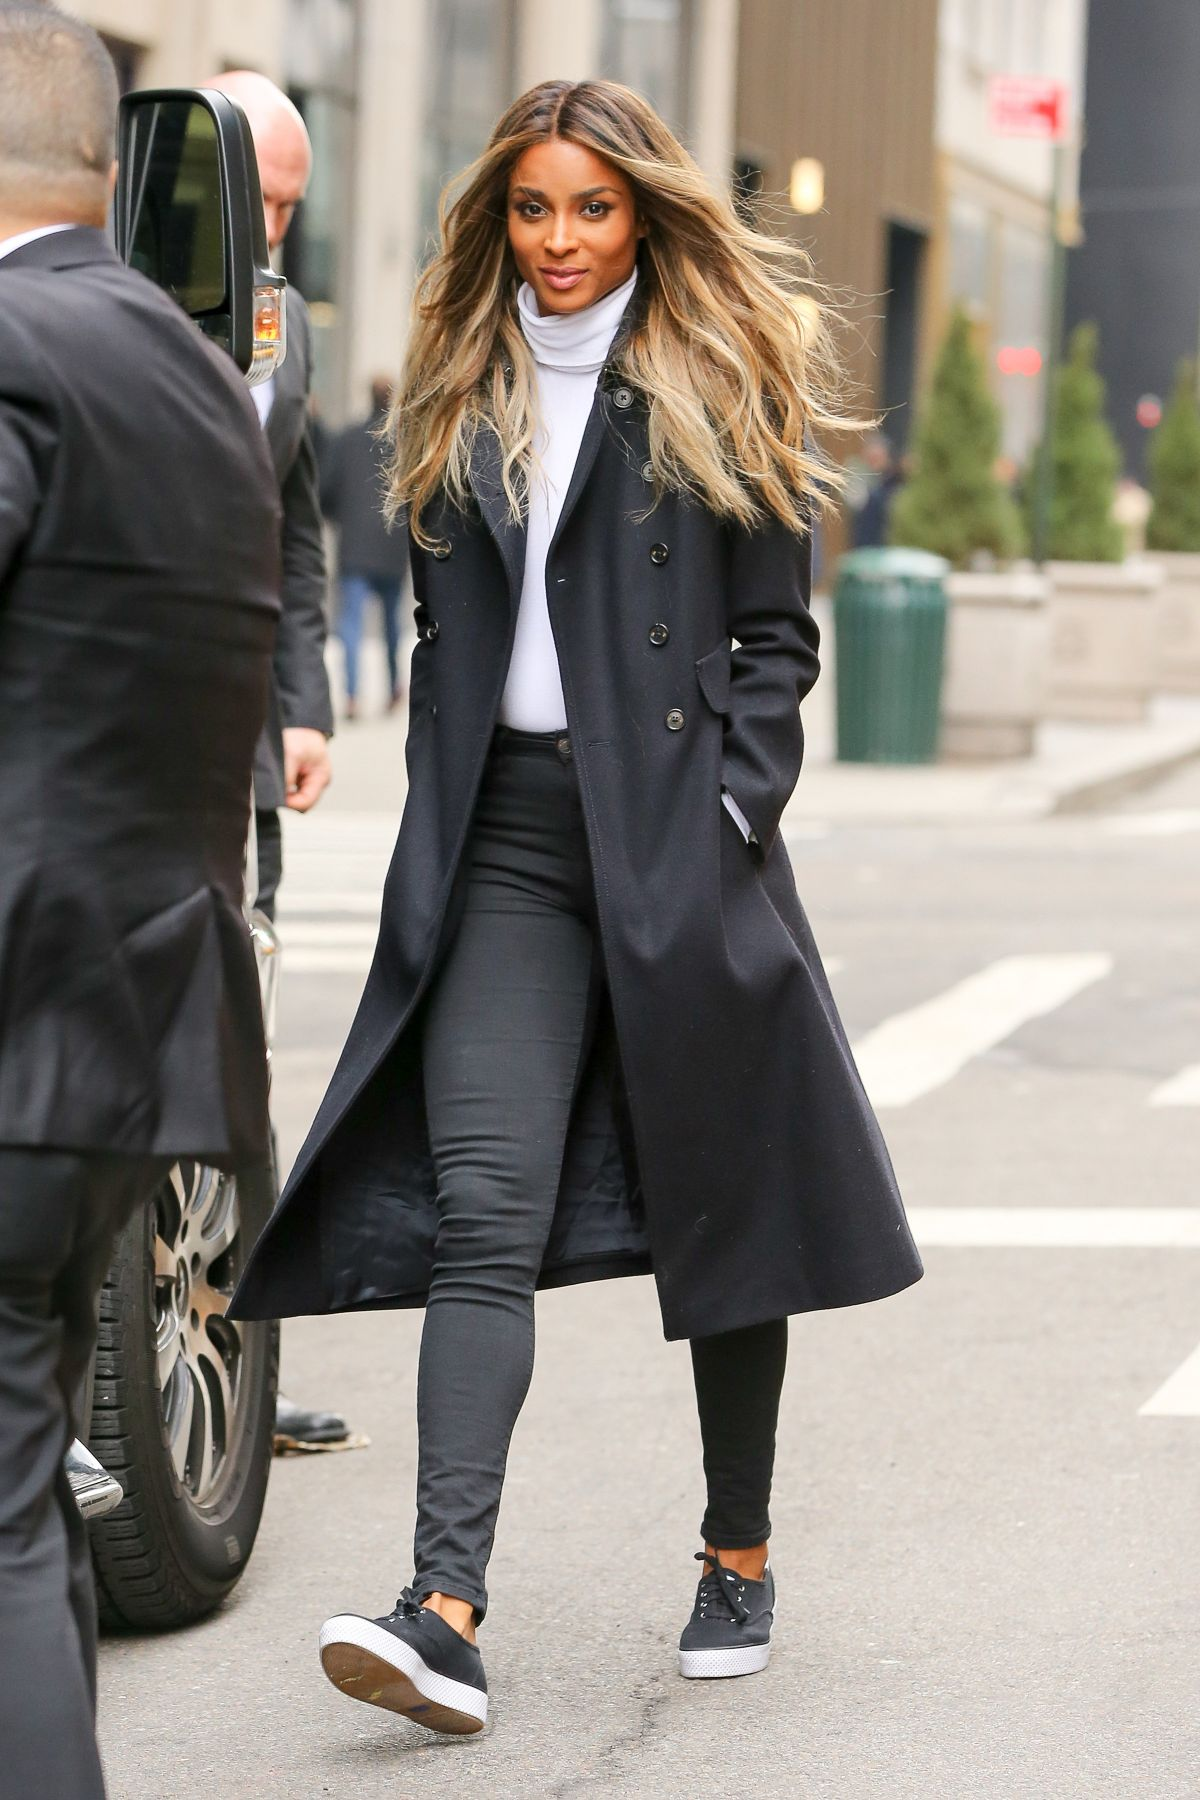 Ciara Leaves Polo Store In New York 02 11 2016 Hawtcelebs